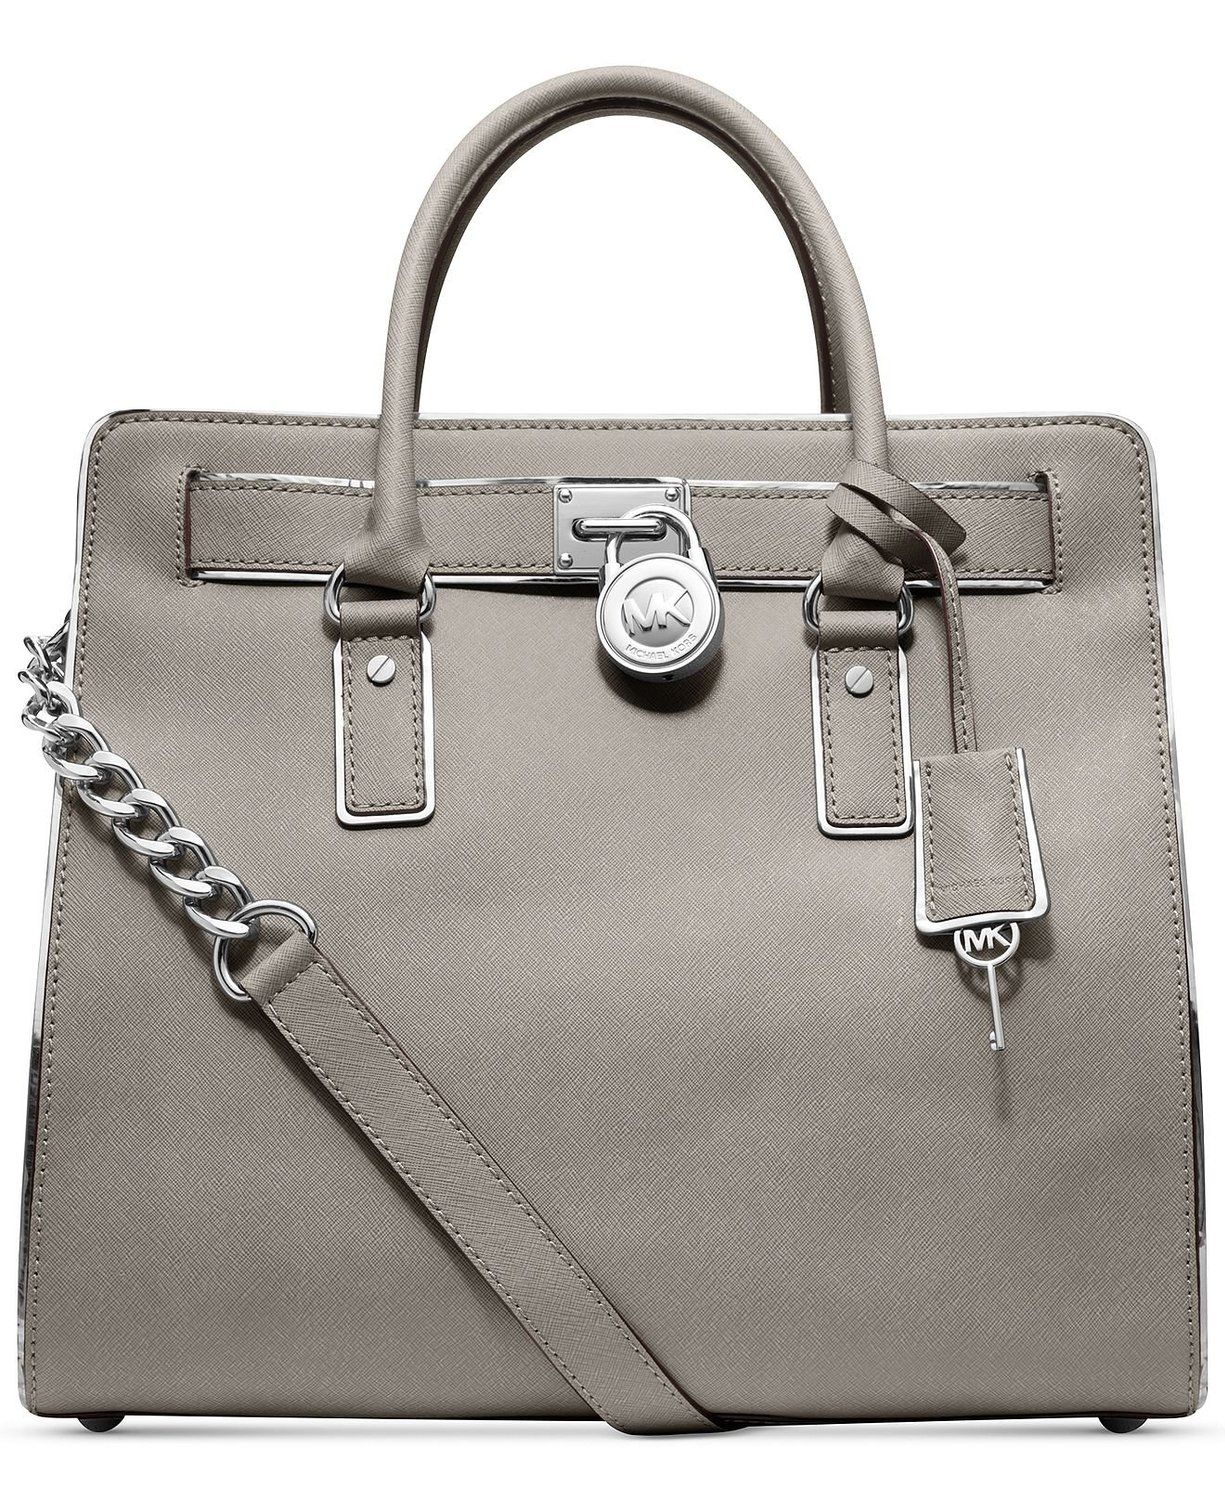 0619bc6fe45e Michael Kors Hamilton Specchio Pearl Grey Leather Tote; I really like the  look of this bag & color, but the name brand is so $$$